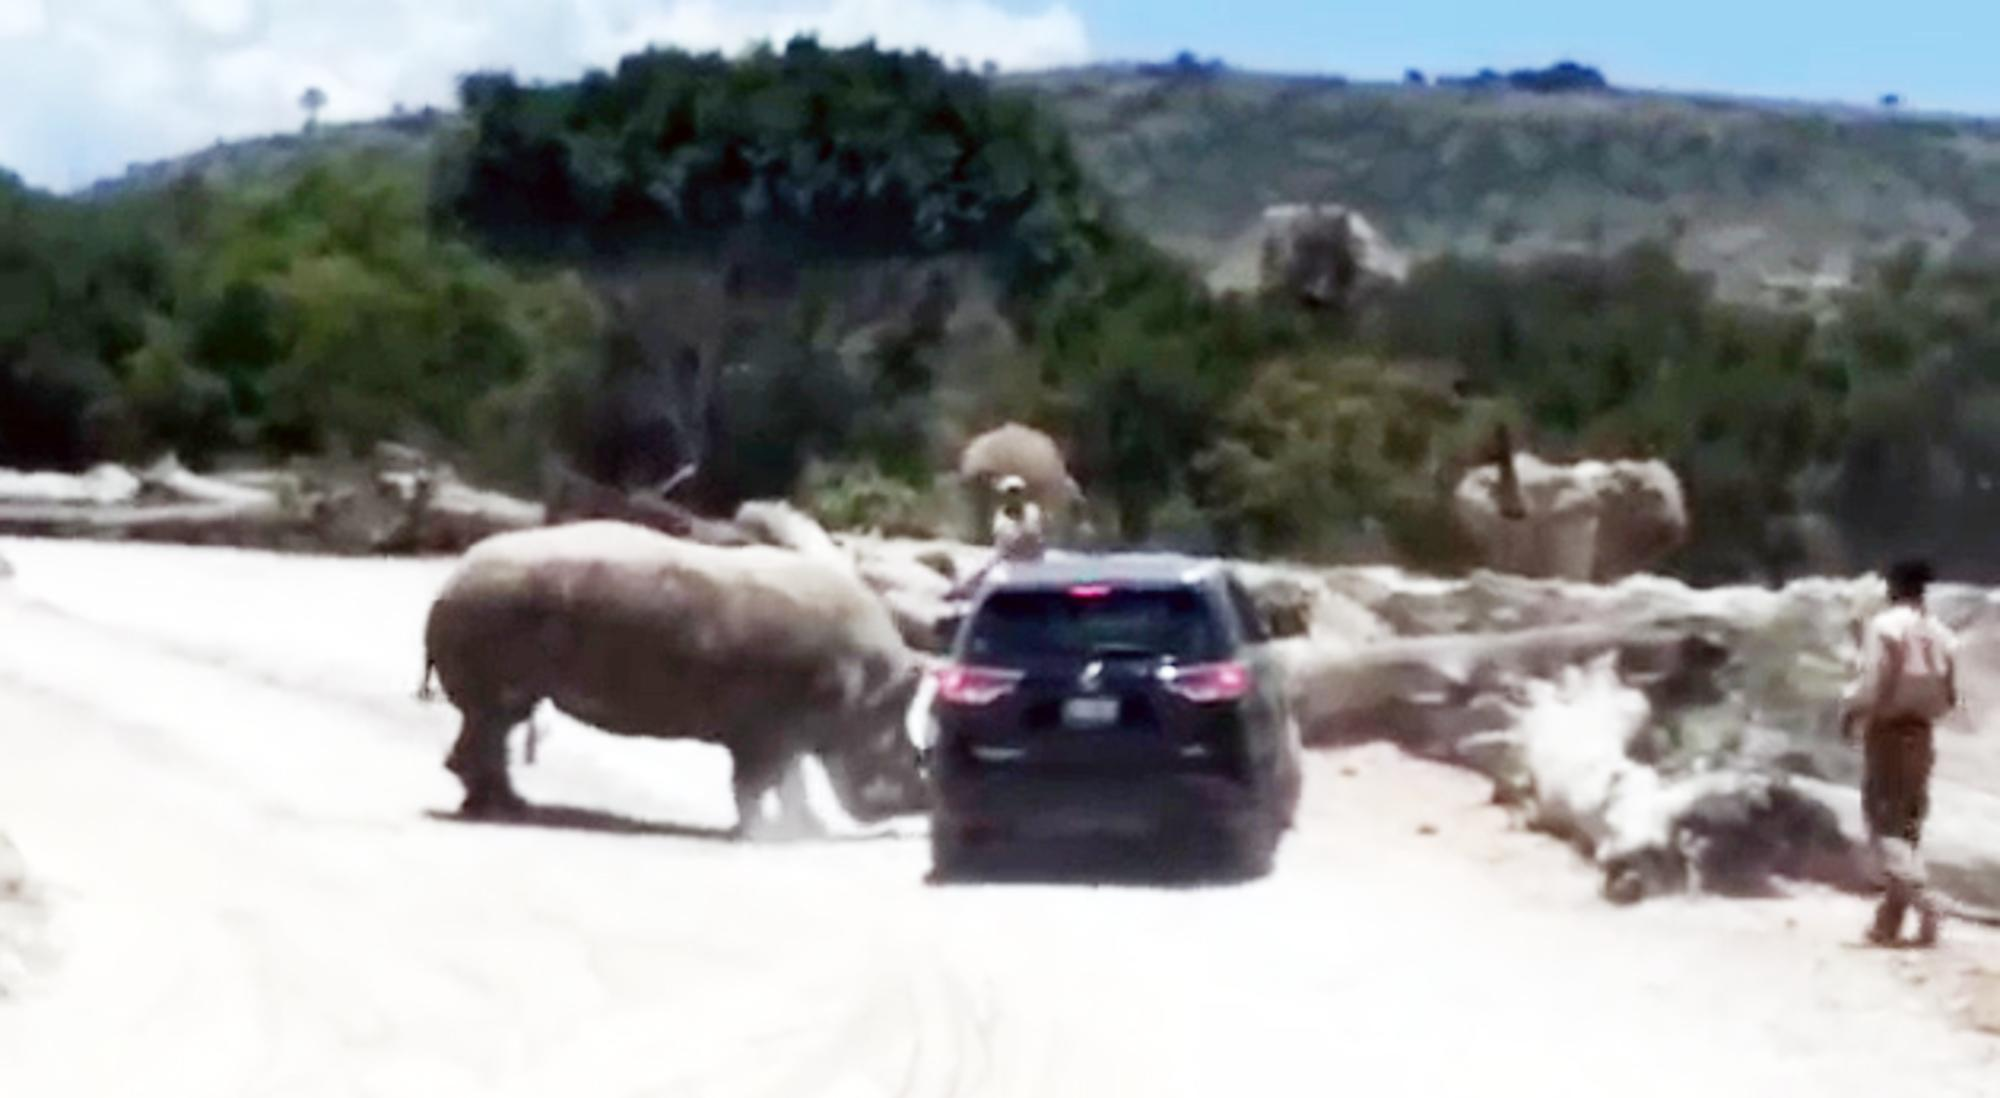 The shocking moment a safari park rhino attacks a family's car